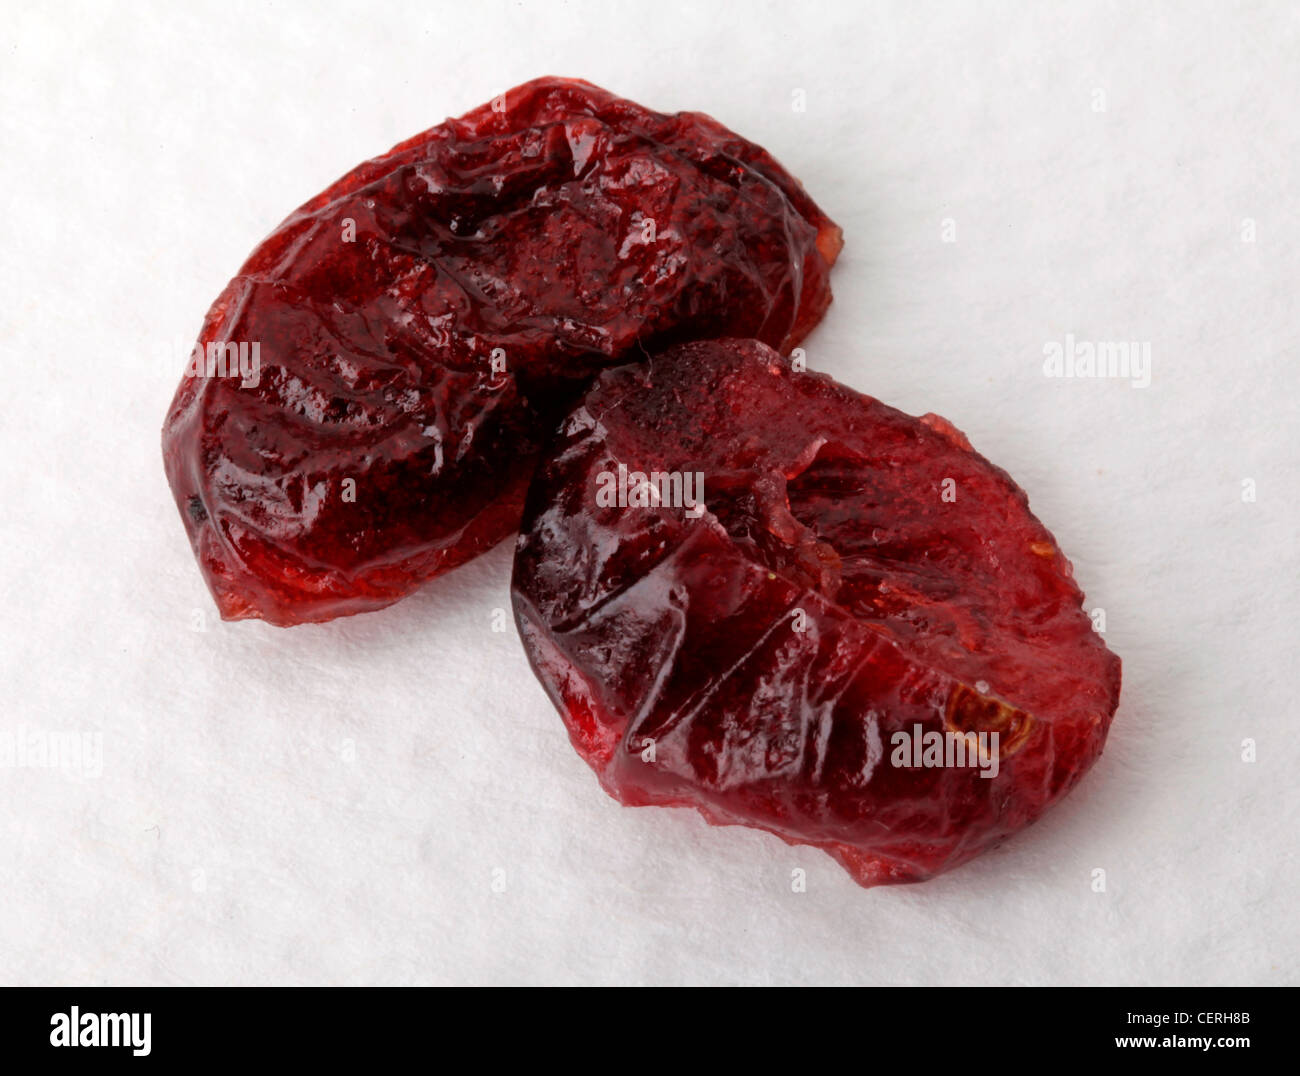 TWO DRIED CRANBERRIES ON WHITE - Stock Image